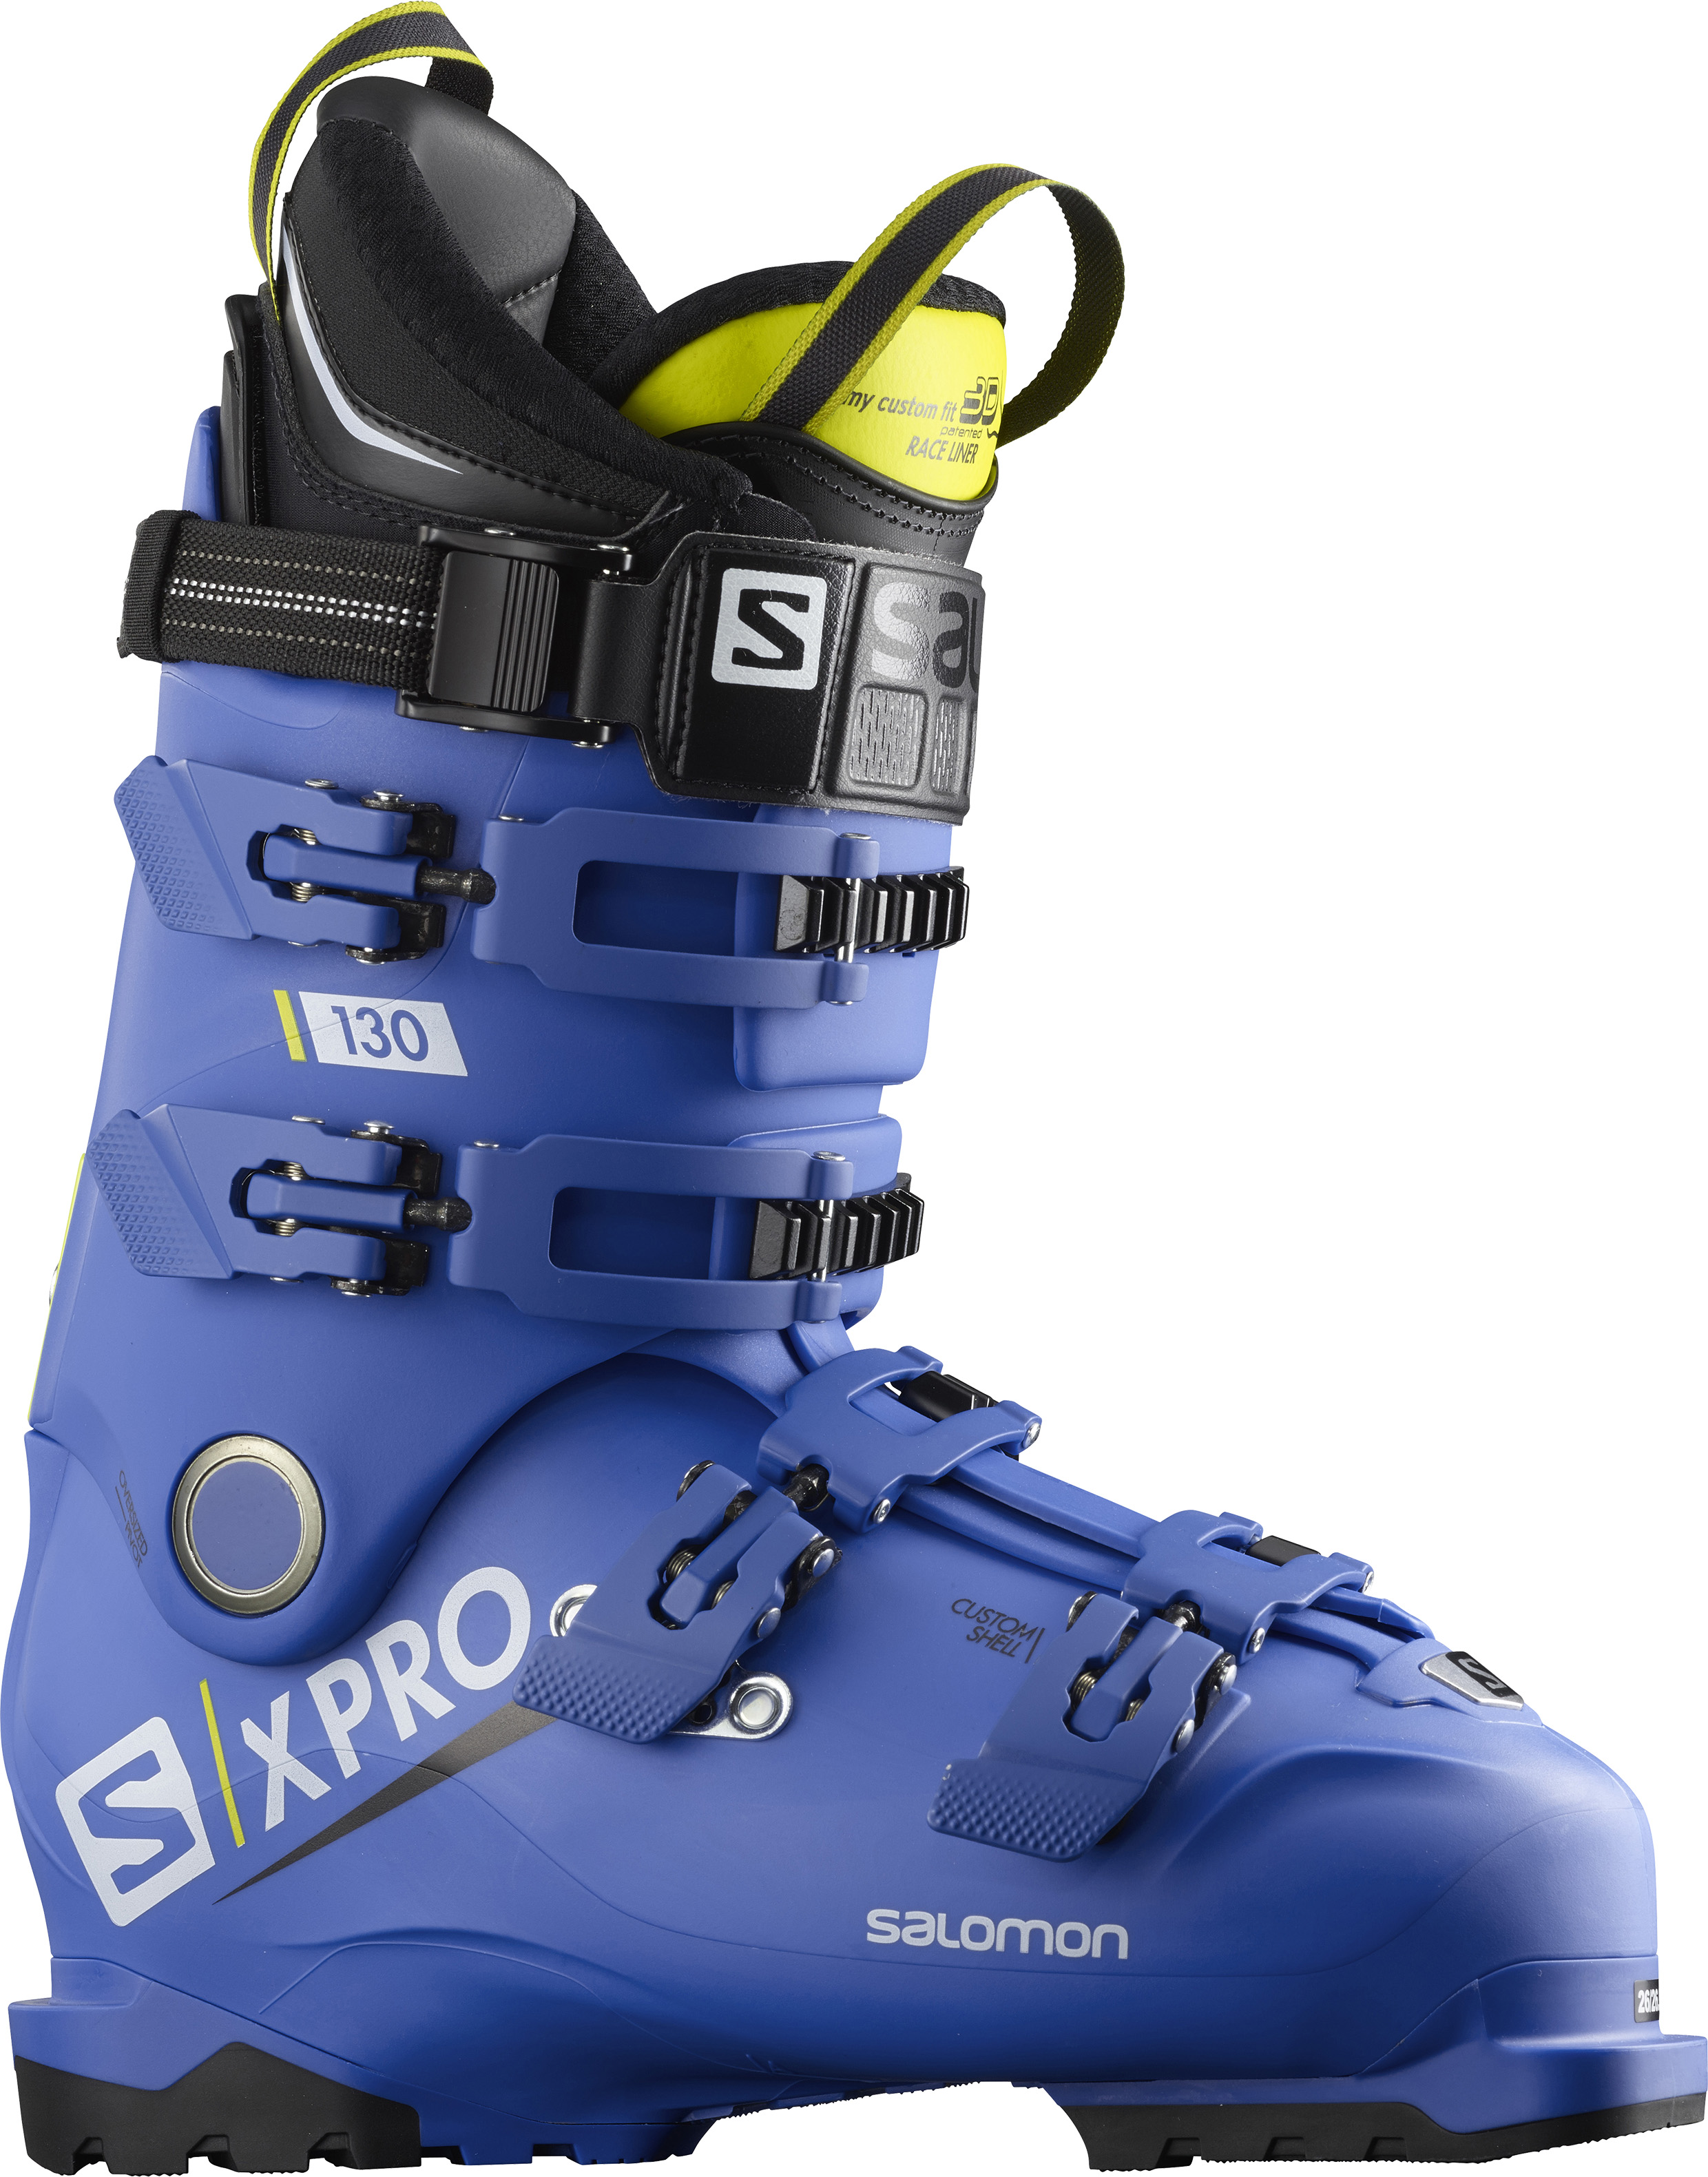 26b6a58ca29 Boot Reviews Archive - Realskiers